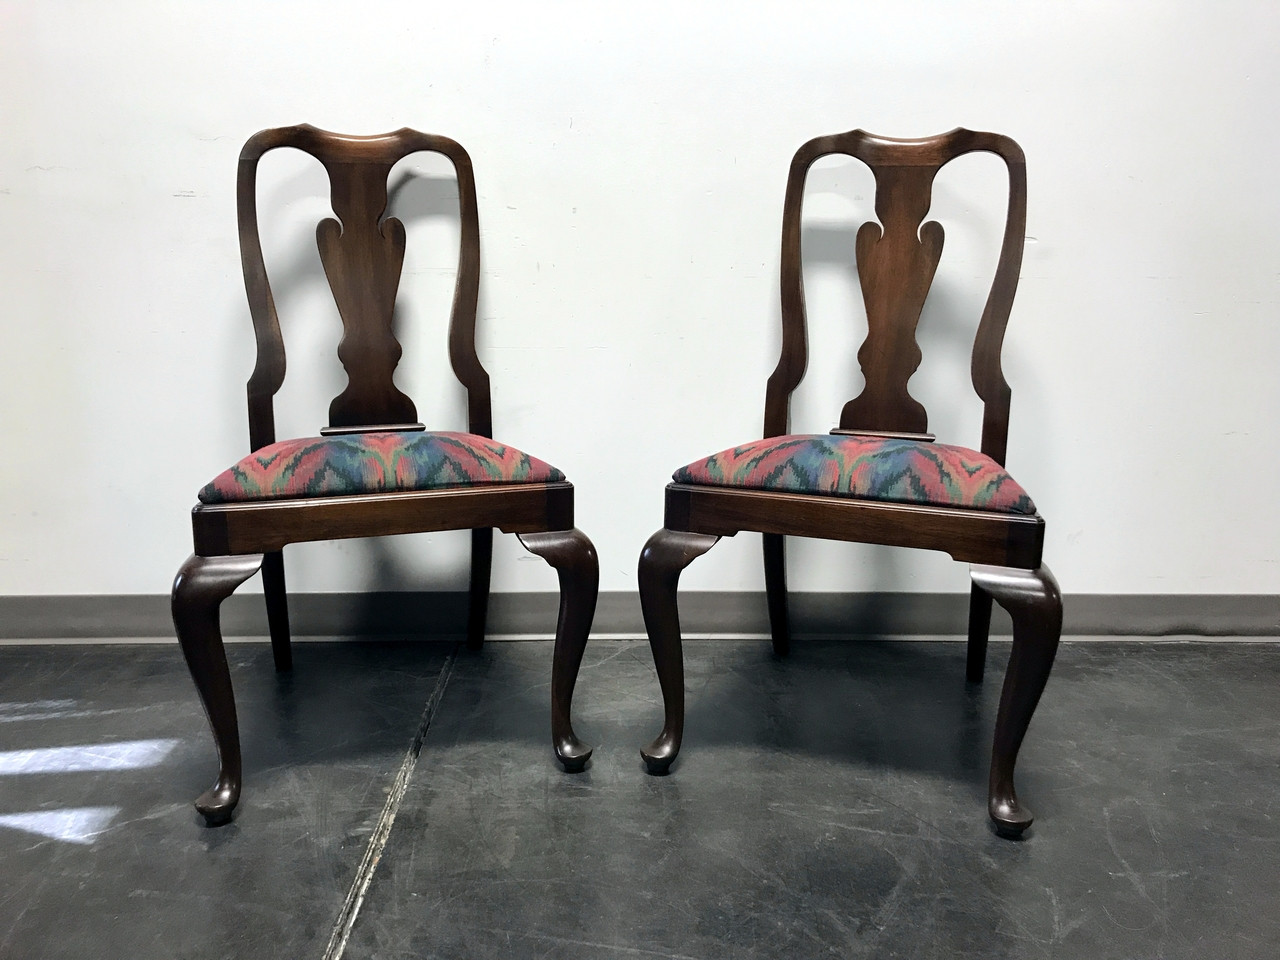 Sold out henkel harris solid mahogany queen anne dining side sold out henkel harris solid mahogany queen anne dining side chairs style 110s finish 29 dzzzfo